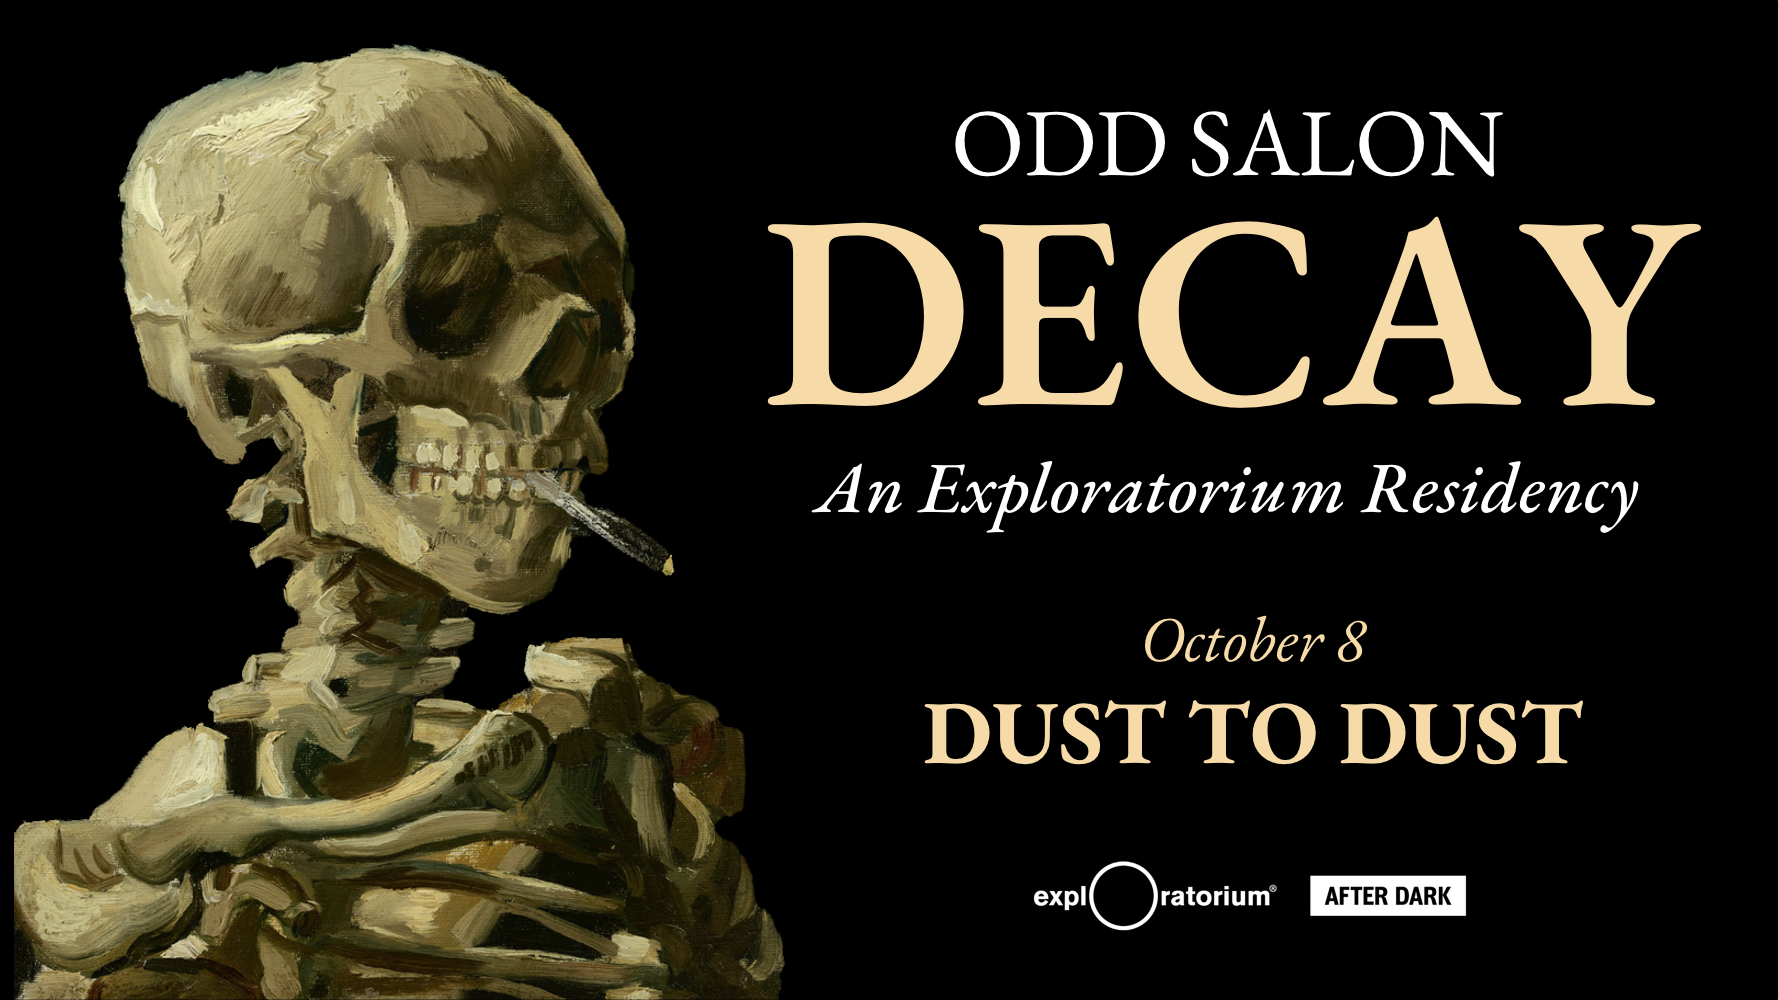 Odd Salon DECAY | Dust to Dust | Exploratorium After Dark